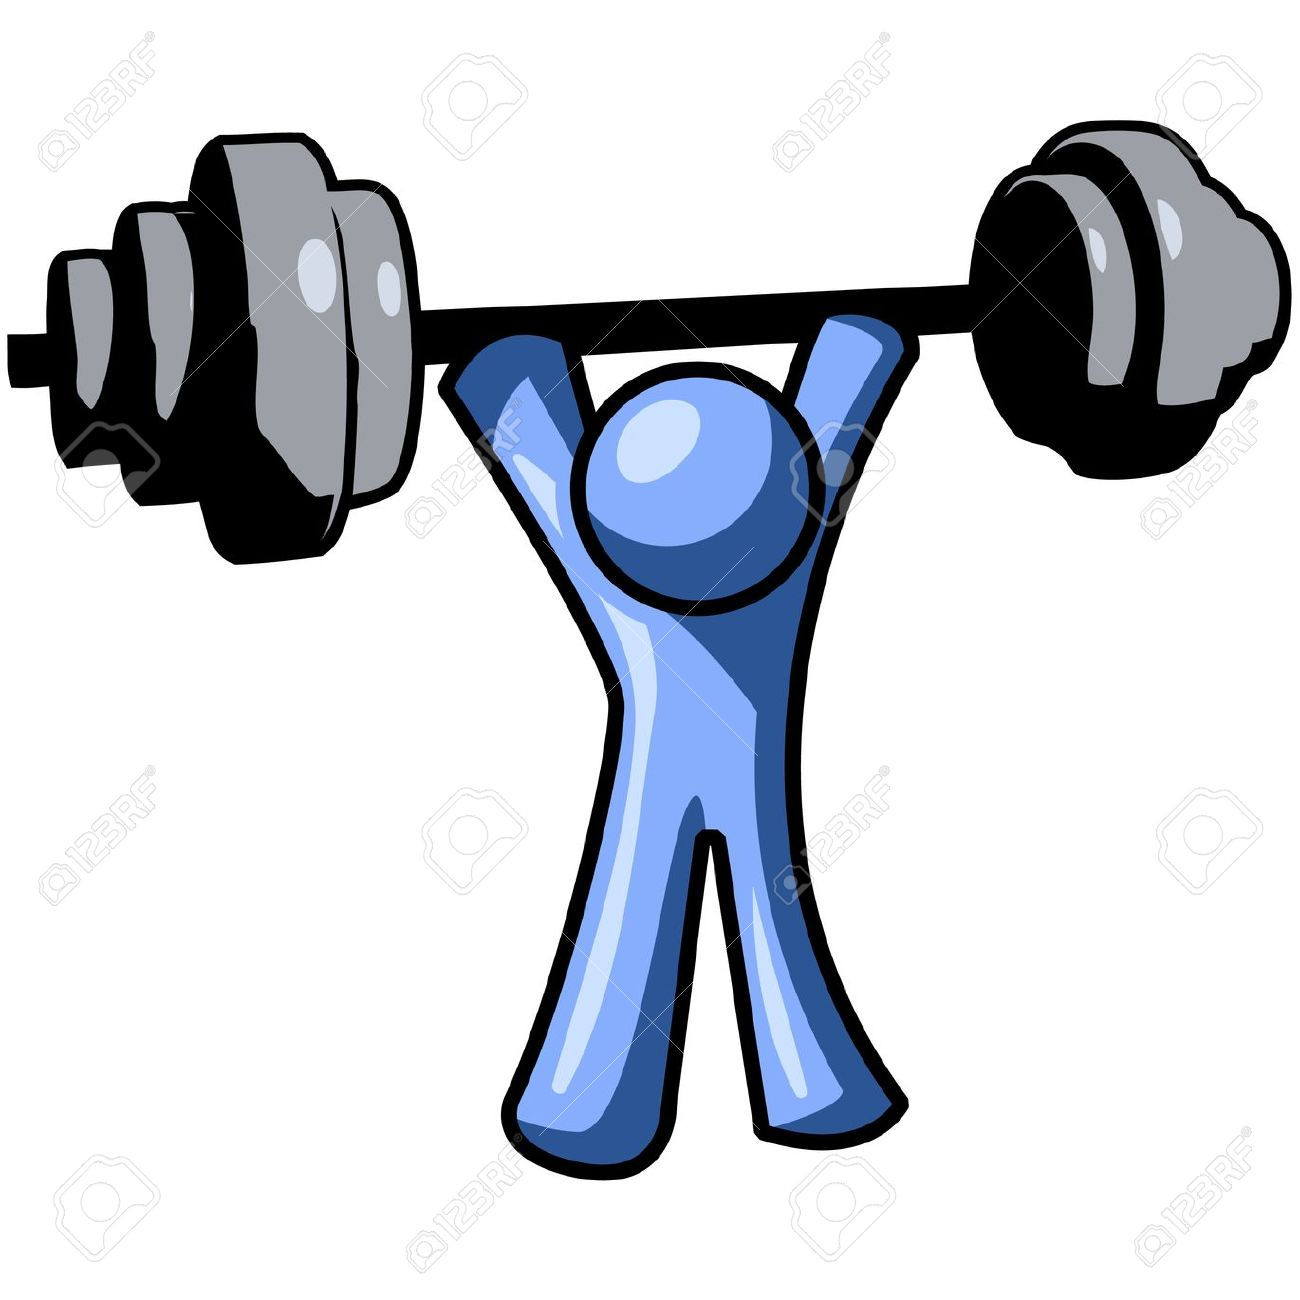 Man lifting barbells clipart.